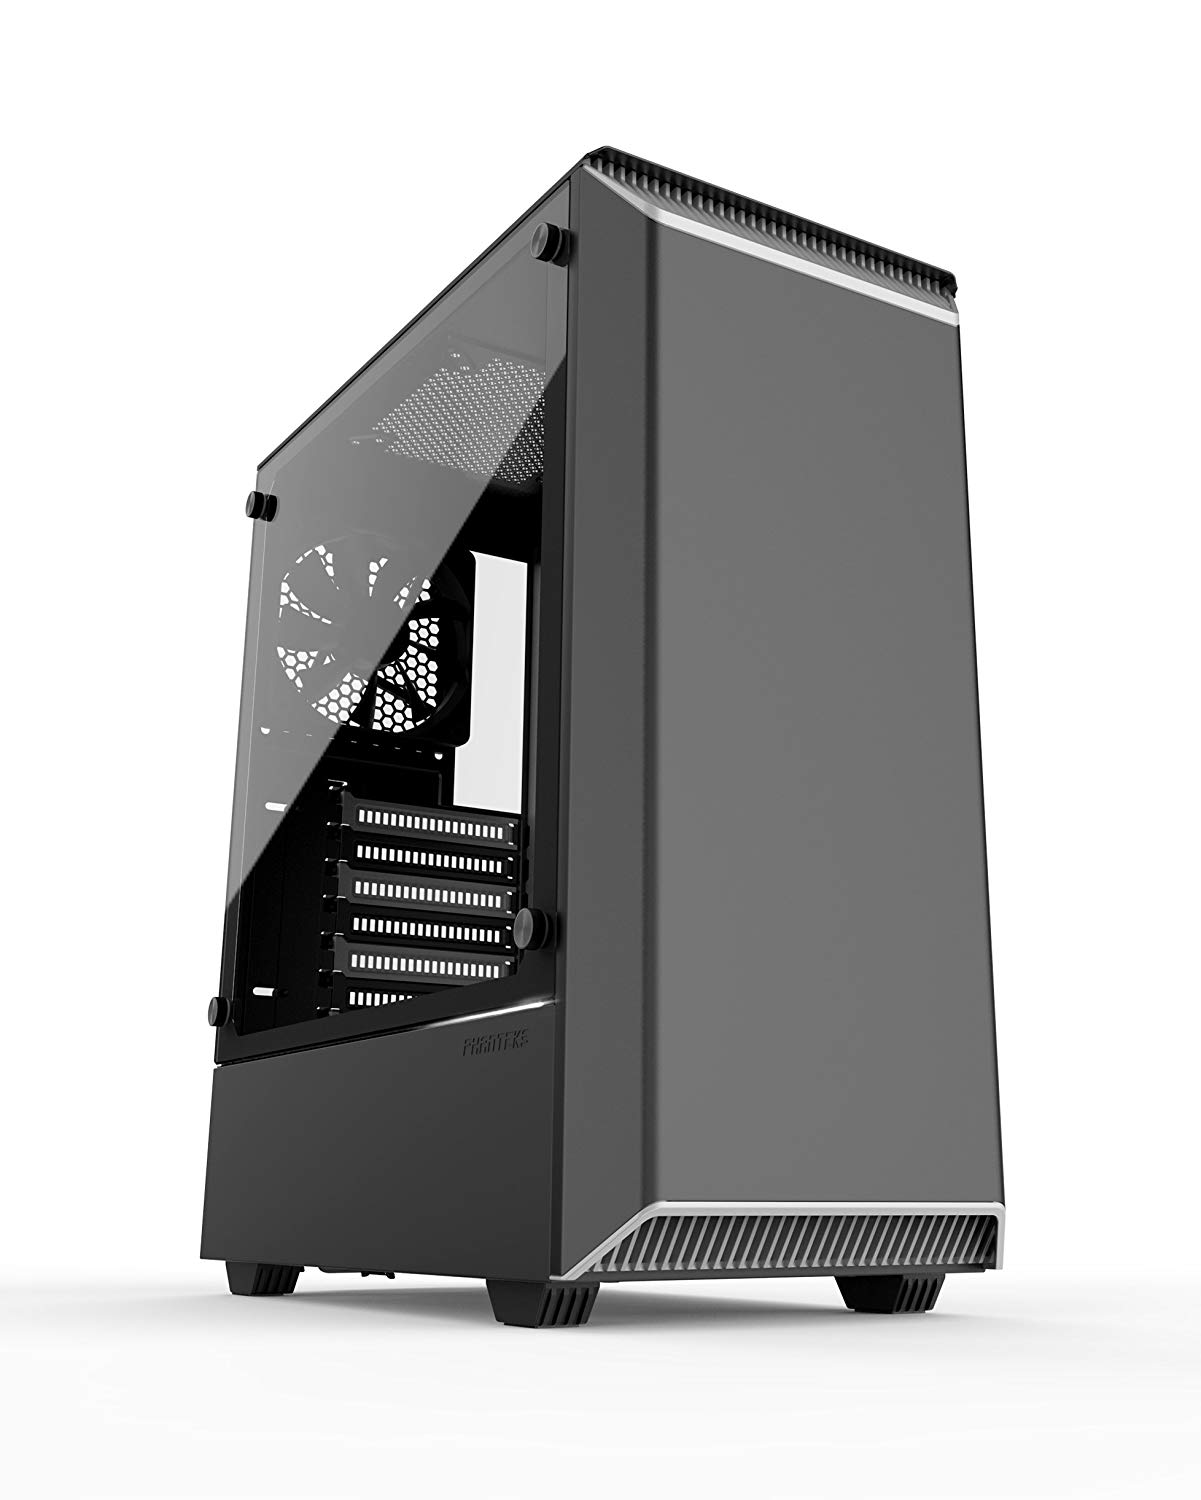 Best 1000 Gaming Pc Build Guide 1080p 120hz 1440p 60hz Hardware Times Best pc build for 1080p 144hz gaming